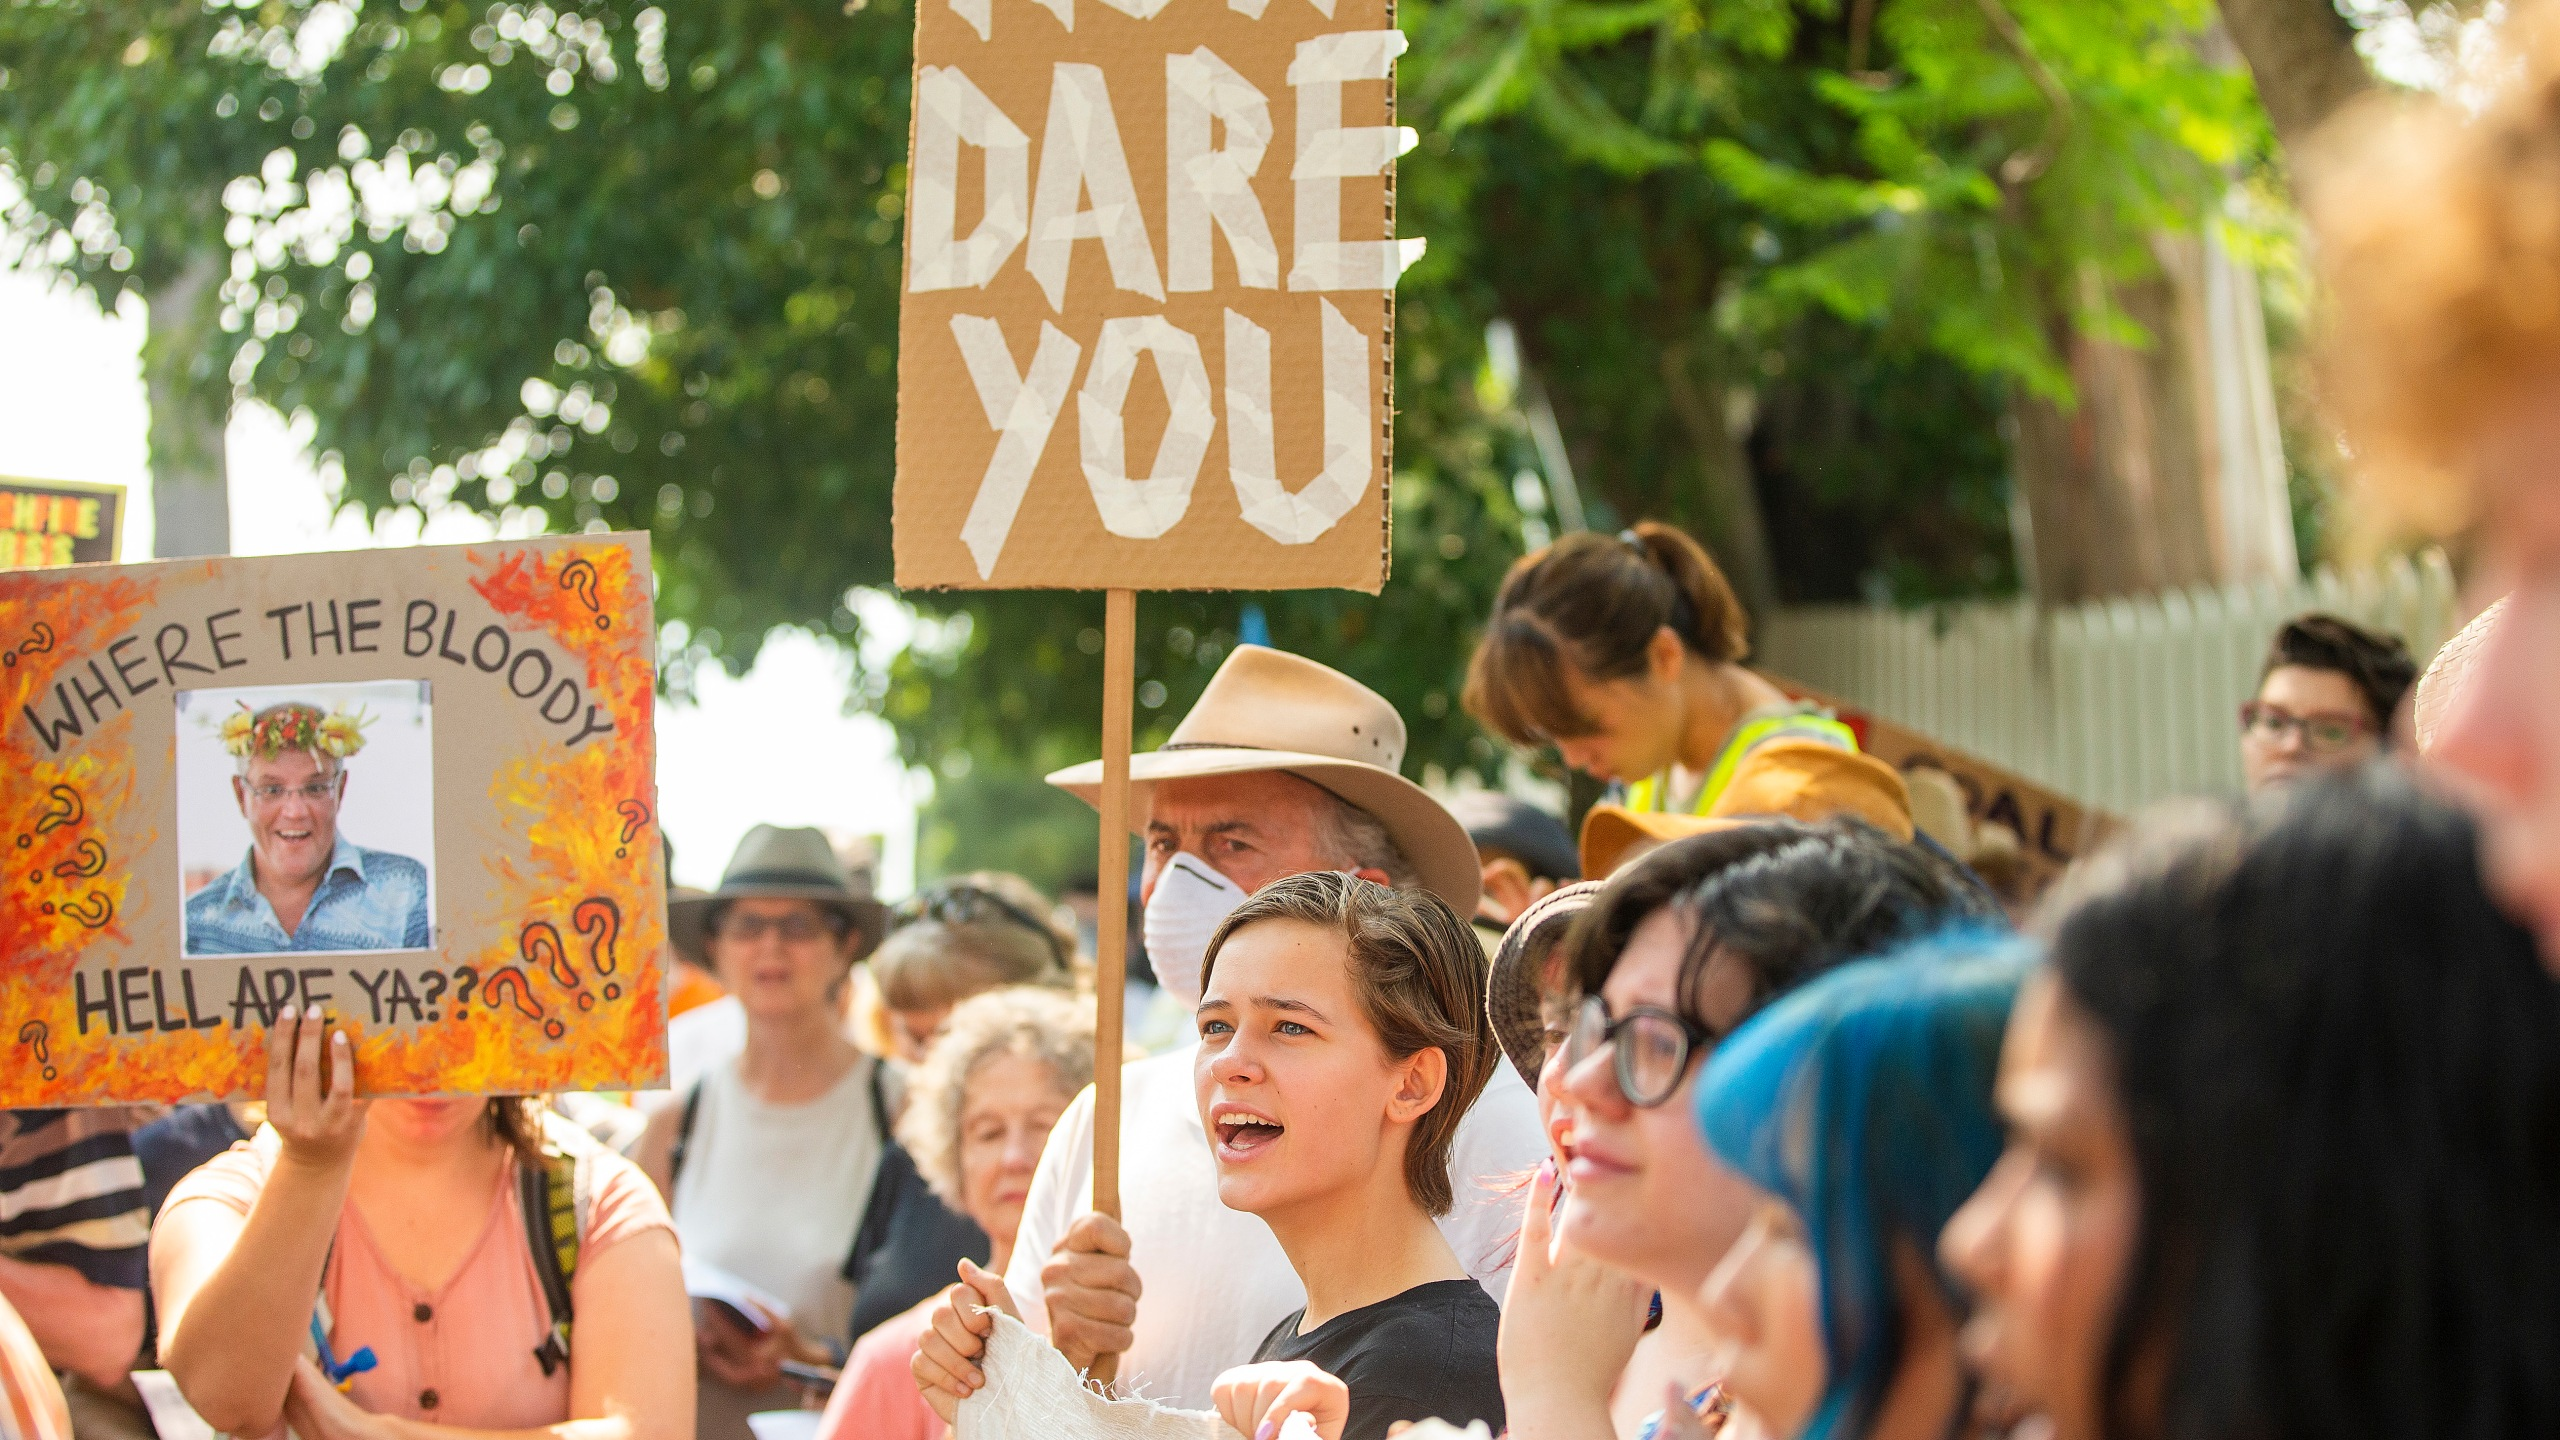 Protestors hold up banners during a protest at Kirribilli House on Dec. 19, 2019 in Sydney, Australia. Protestors organized the rally outside Prime Minister Scott Morrison's Sydney residence over his absence during the ongoing bushfire emergencies across Australia. (Credit: Jenny Evans/Getty Images)